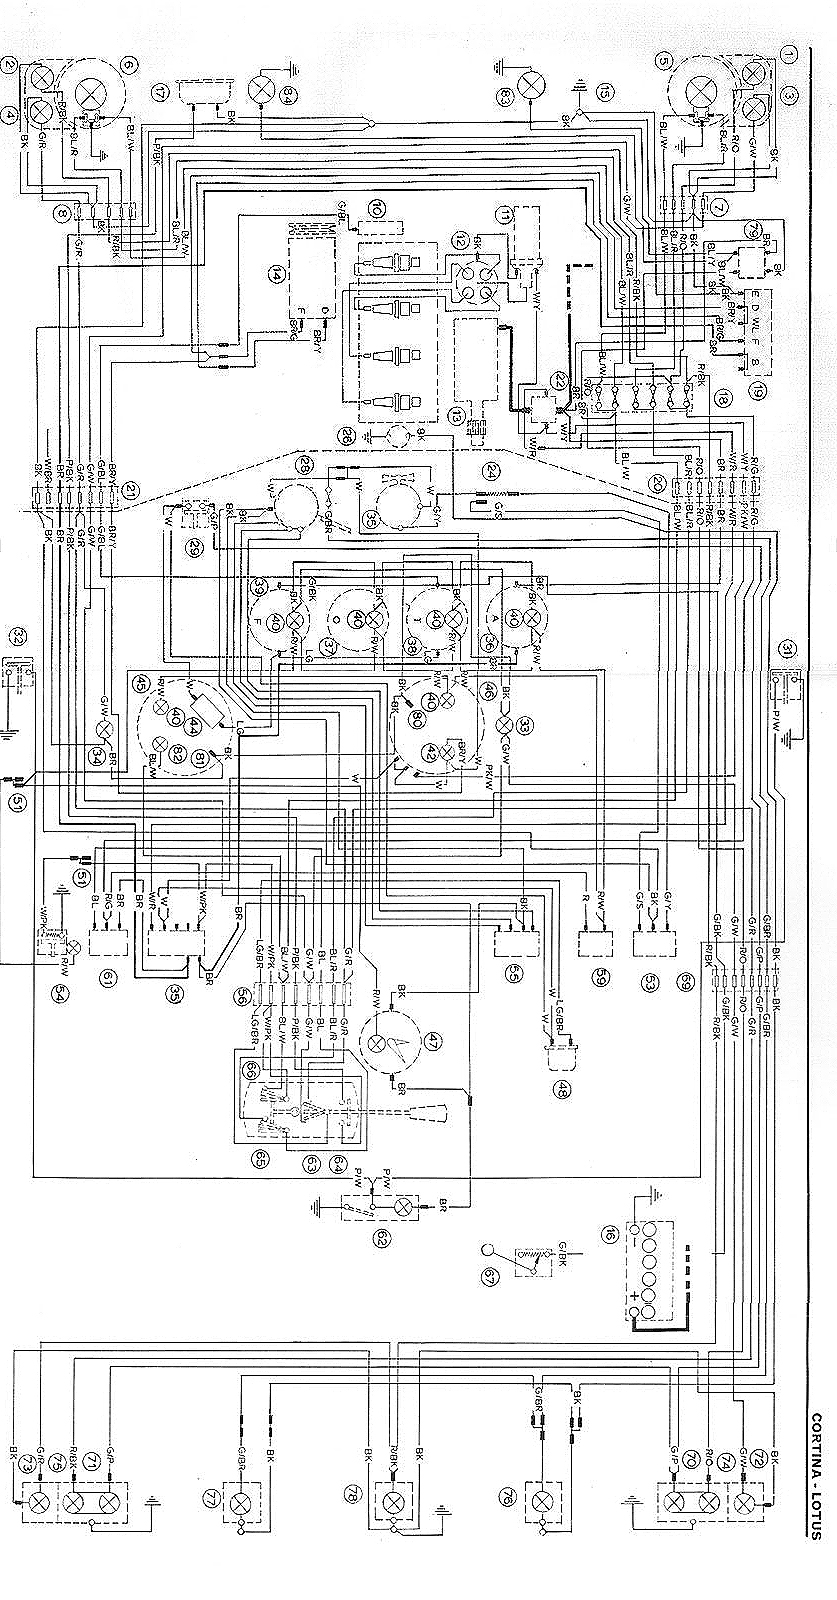 ford sierra wiring diagram schematic wrg 7679 escort zx2 pdf news u2022 ranger at 1999